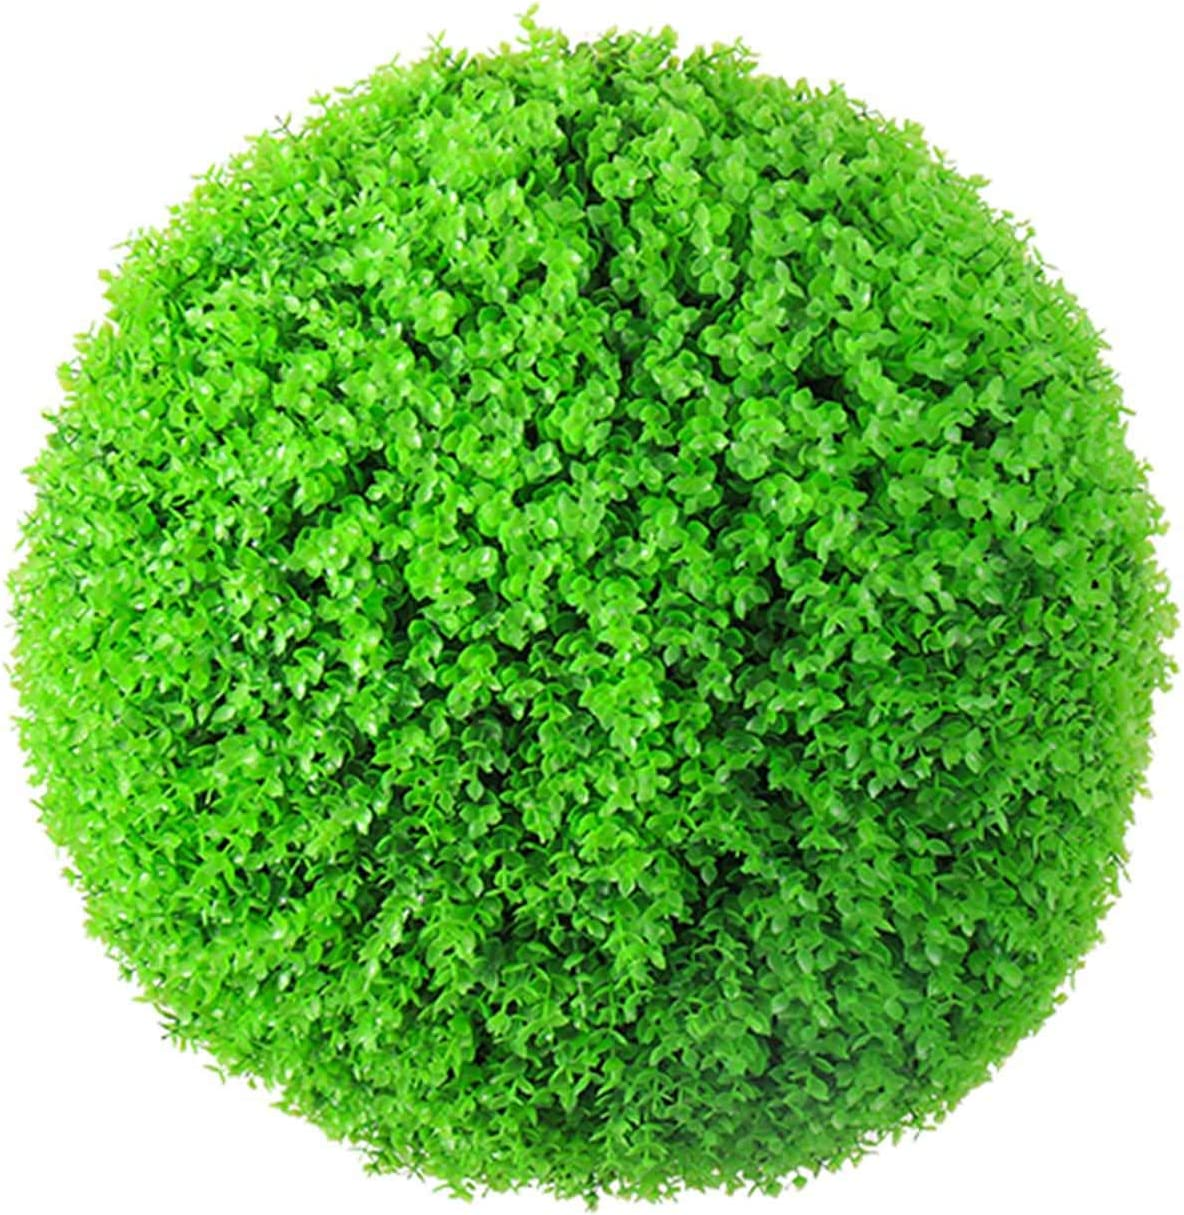 Artificial Plant Topiary Ball Large Bal Round online shop Green Some reservation Bright Grass